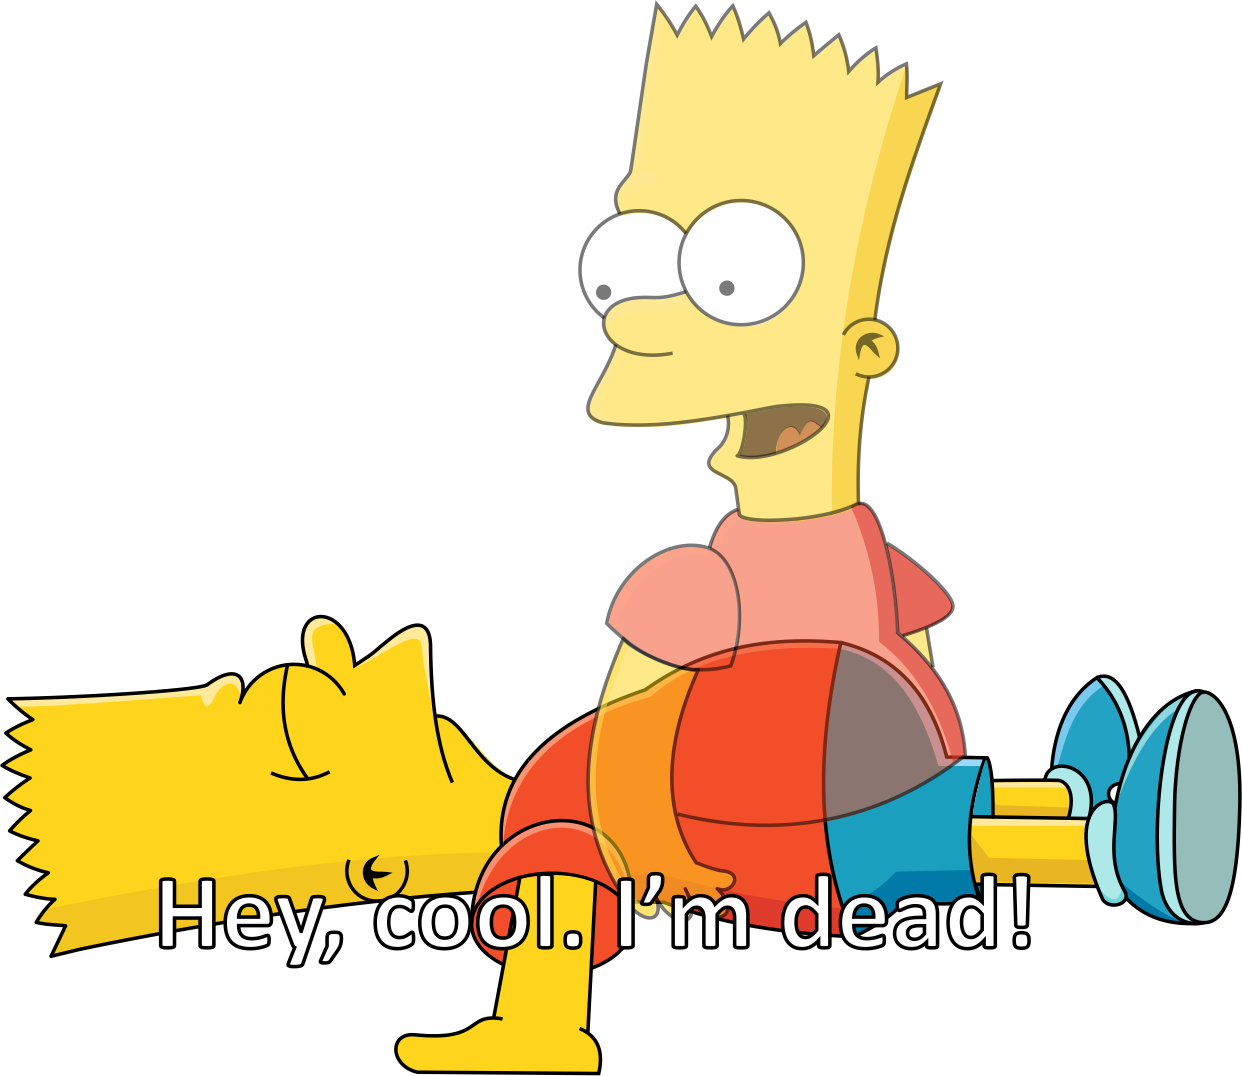 Dead memes png. Cool im the simpsons